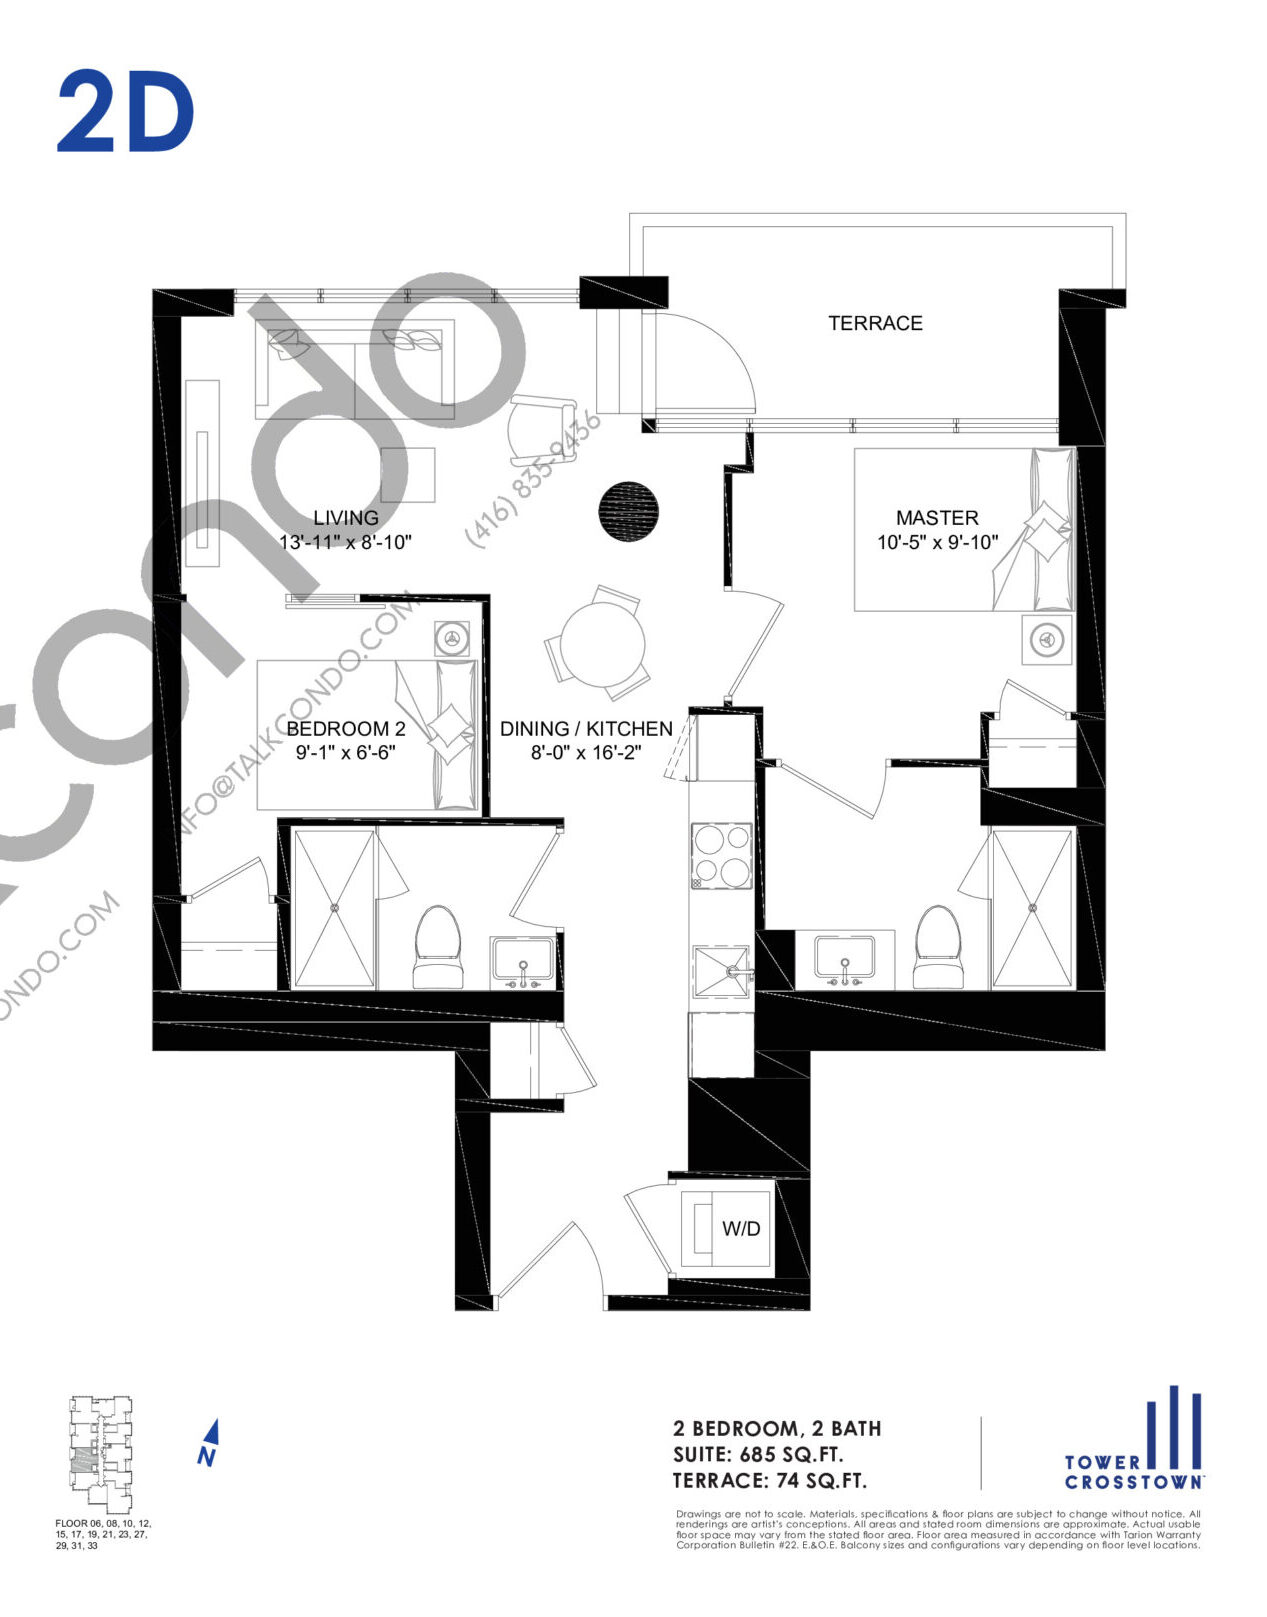 2D Floor Plan at Crosstown Tower 3 Condos - 685 sq.ft